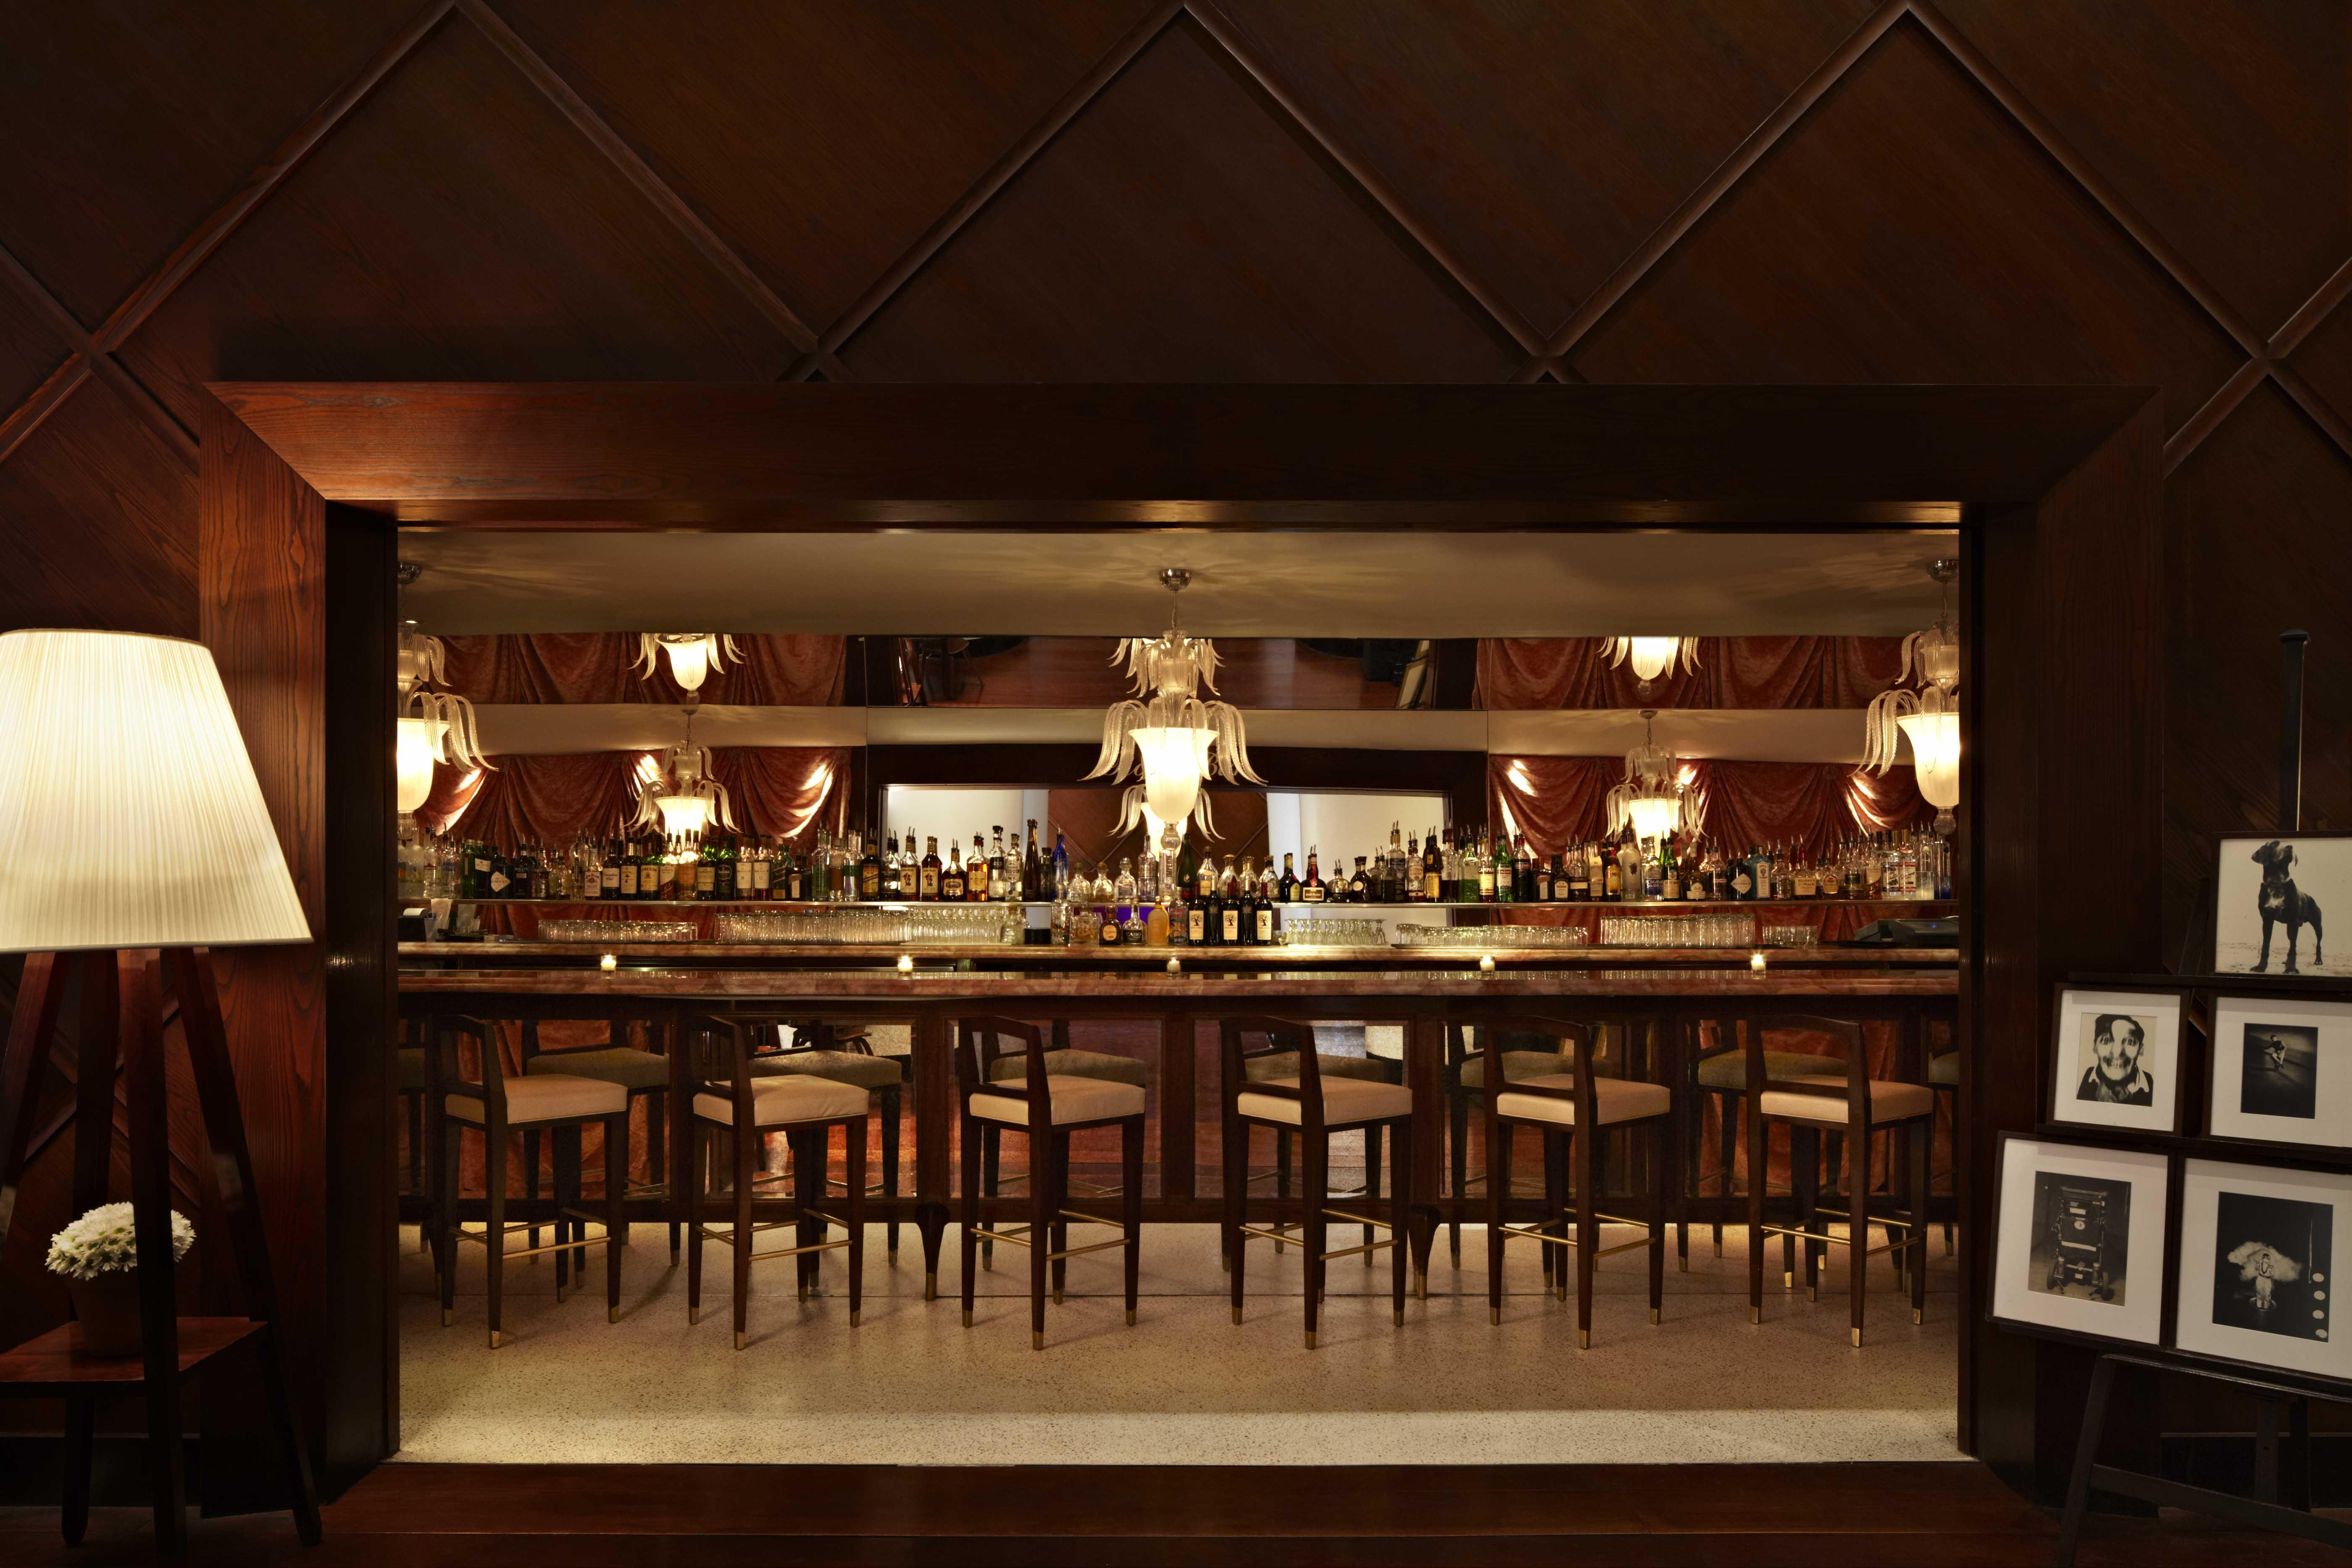 chairs in front of a softly lit wooden bar